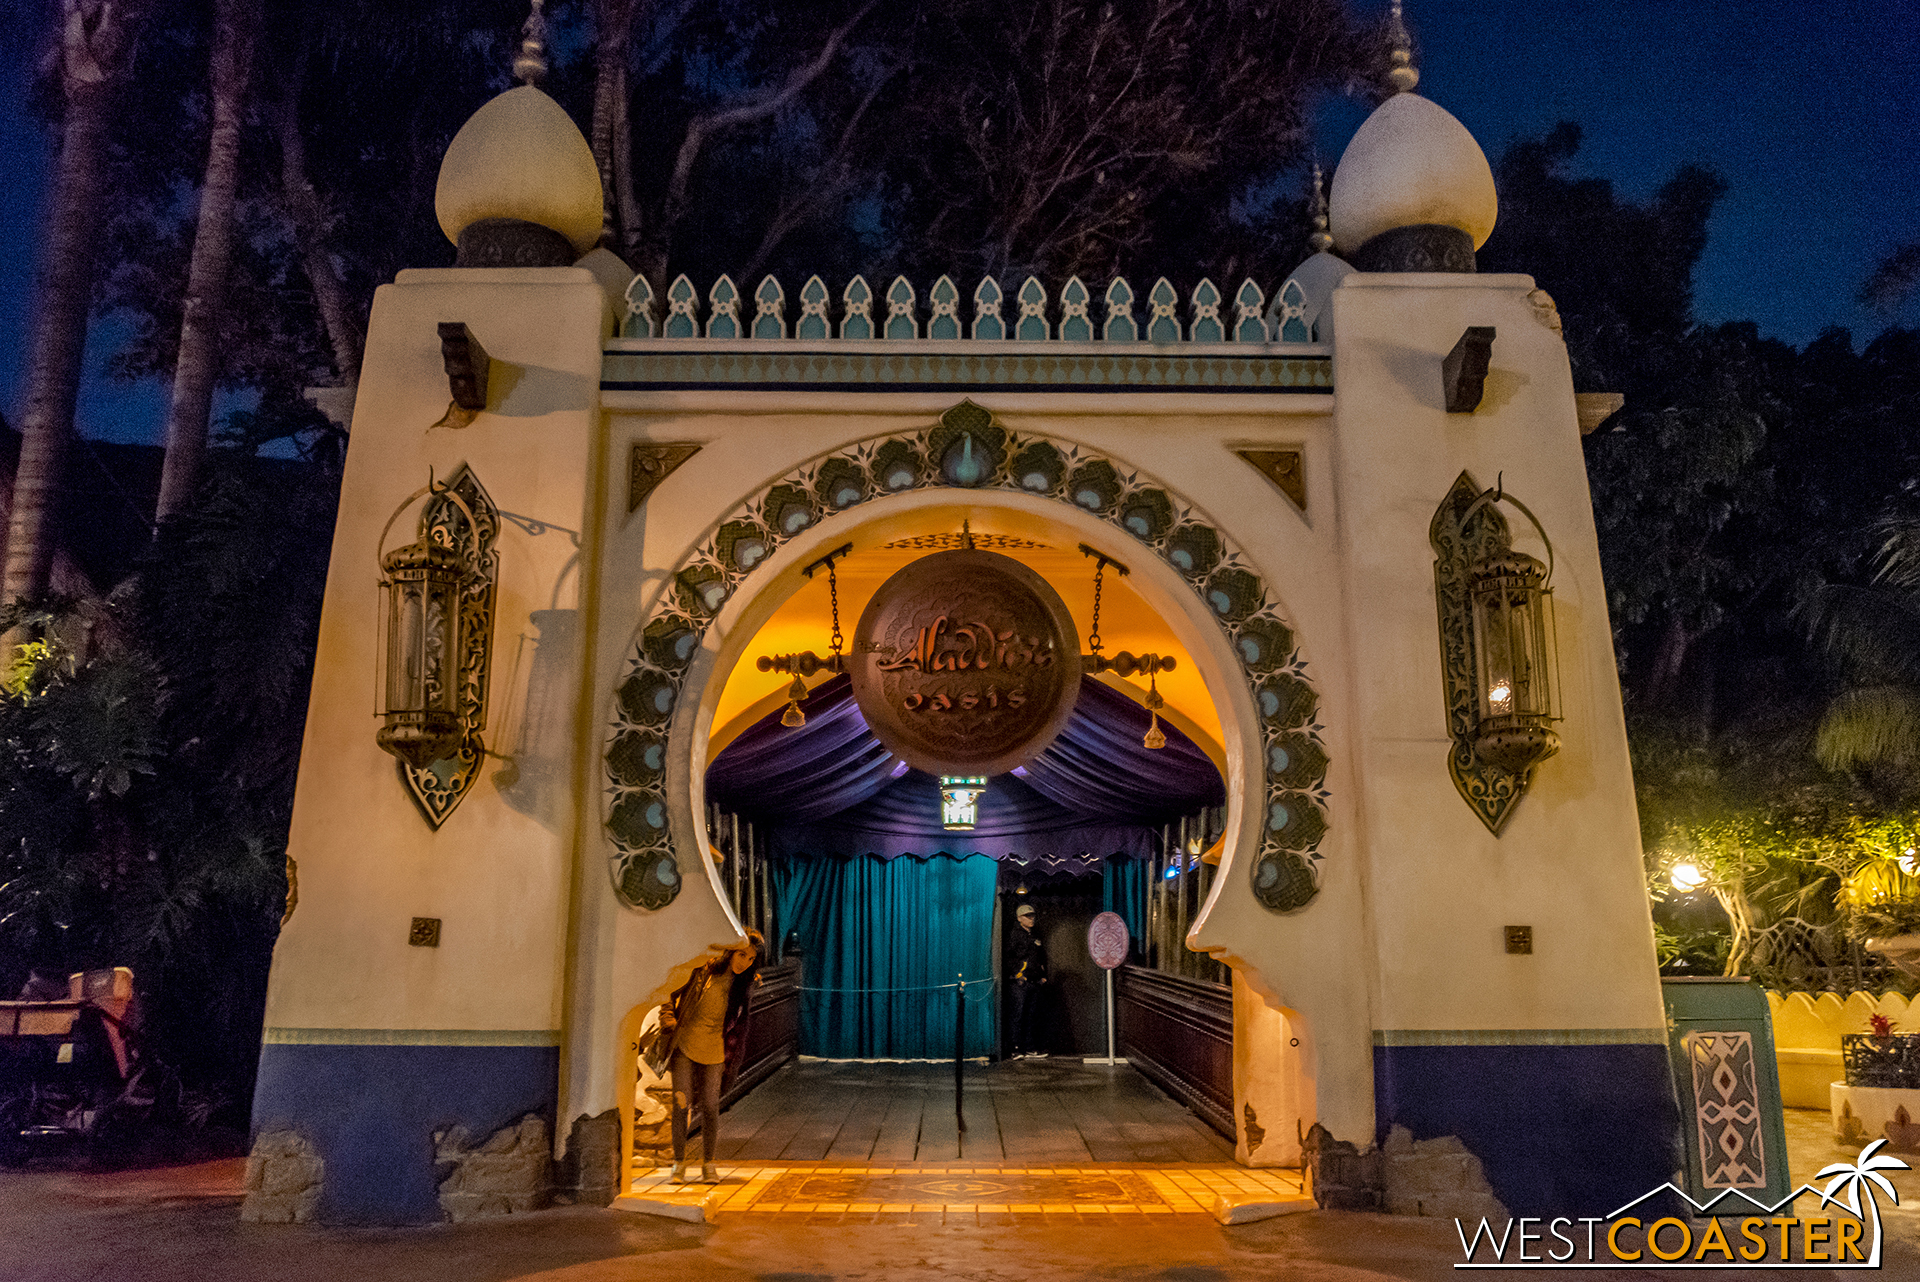 Aladdin's Oasis will be transformed into The Tropical Hideaway soon. Sad news for anyone who hoped for the return of an entertainment venue at the old Tahitian Terrace.